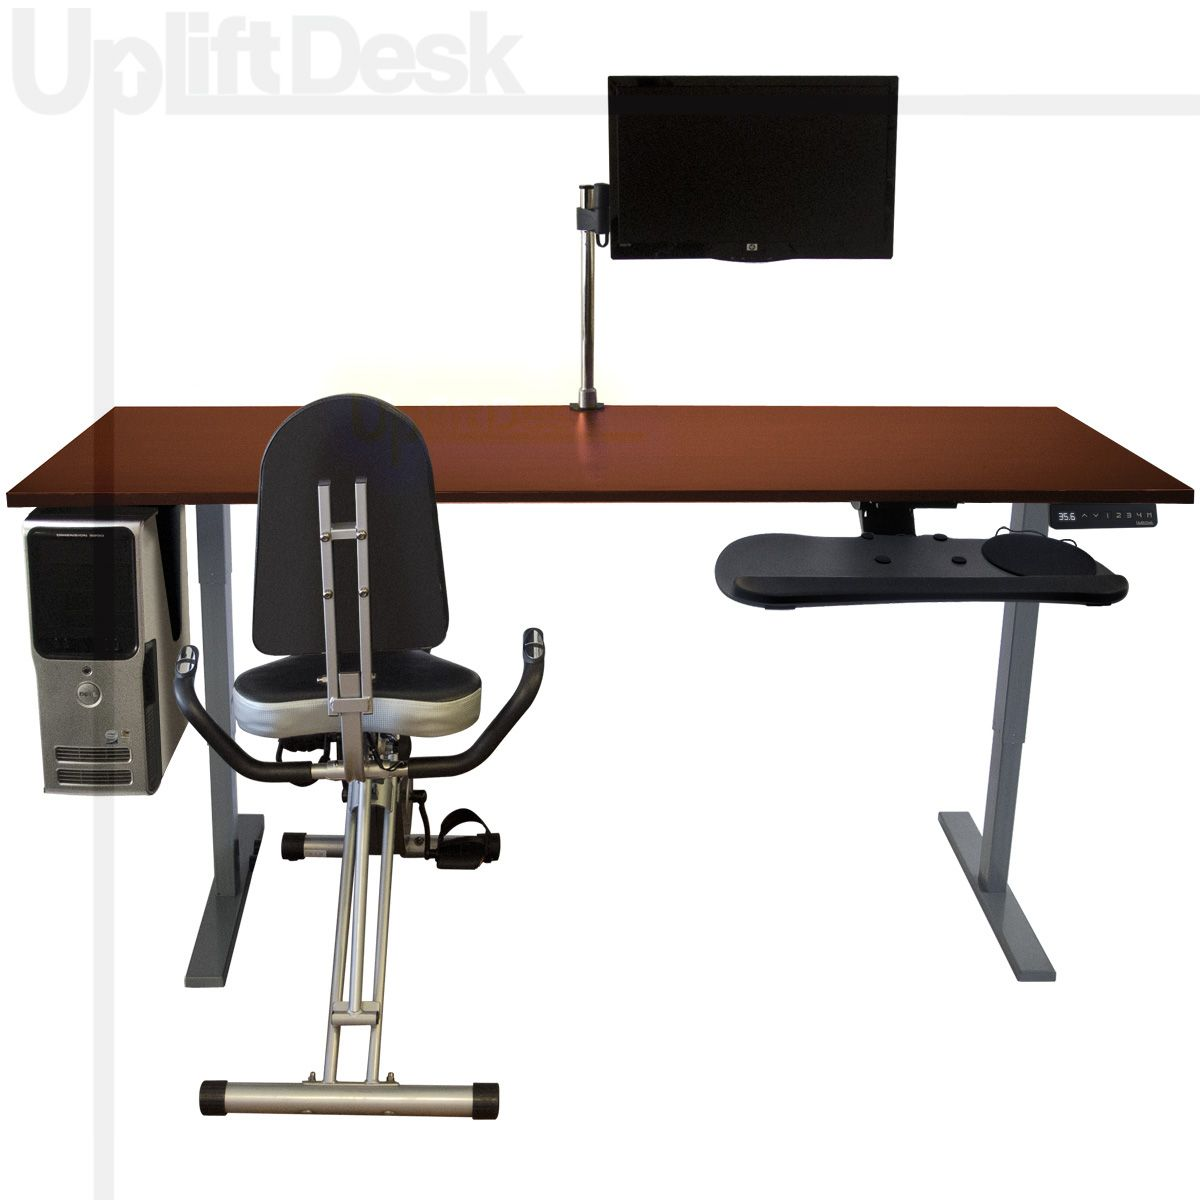 The Uplift Complete Exercise Desk Is A Total Ergonomic Desk Solution For Users Looking To Completely Transform Their W With Images Desk Workout Desk Adjustable Height Desk